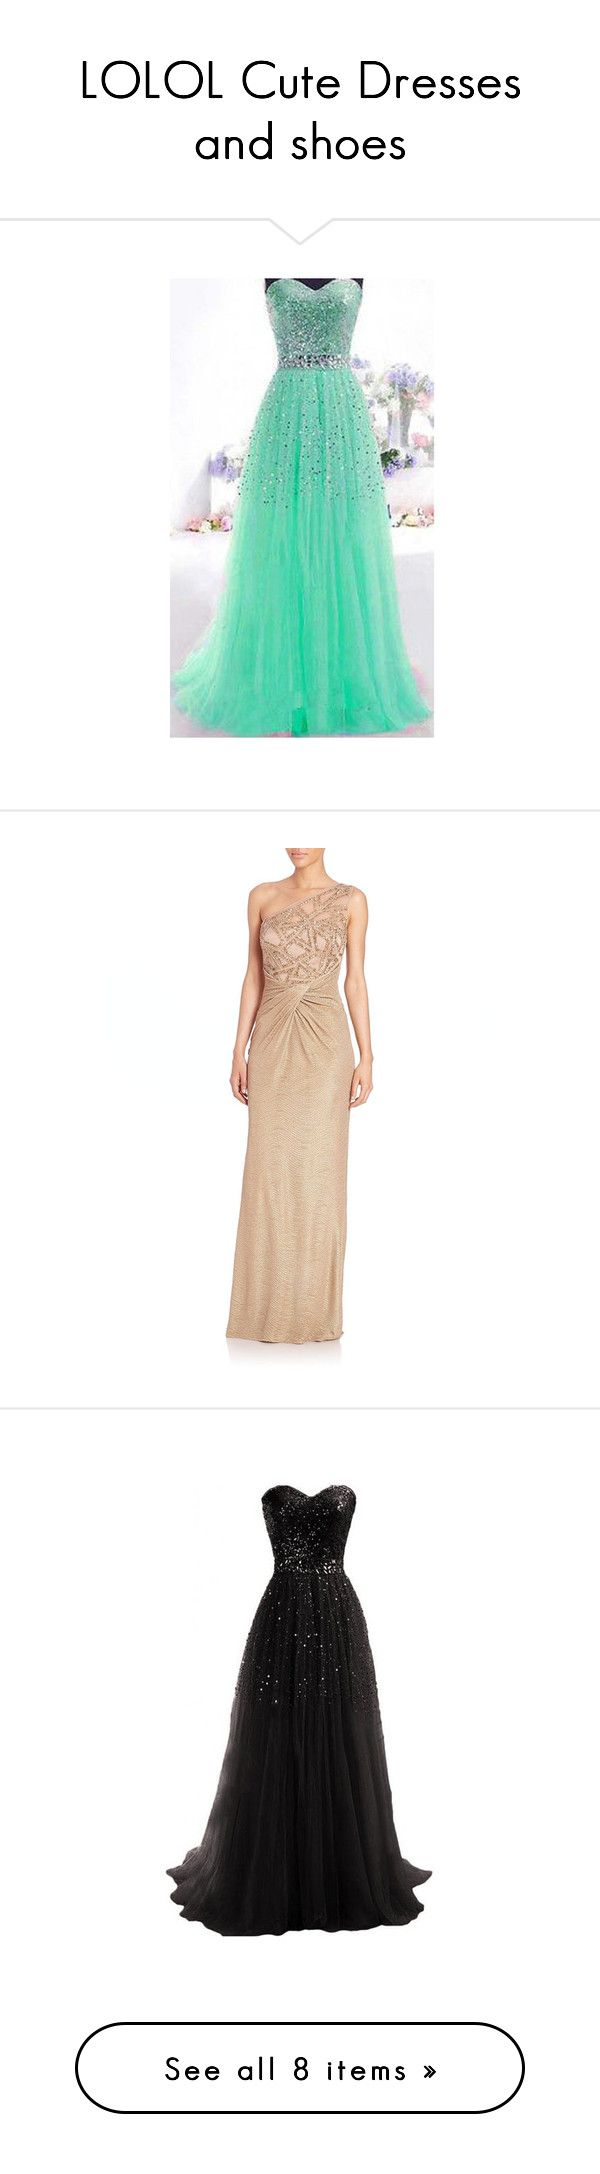 """""""LOLOL Cute Dresses and shoes"""" by stylestar-191 ❤ liked on Polyvore featuring dresses, vestidos, robes, green, sleeveless dress, tube maxi dress, strapless maxi dress, strapless dress, strapless tube dress and gowns"""